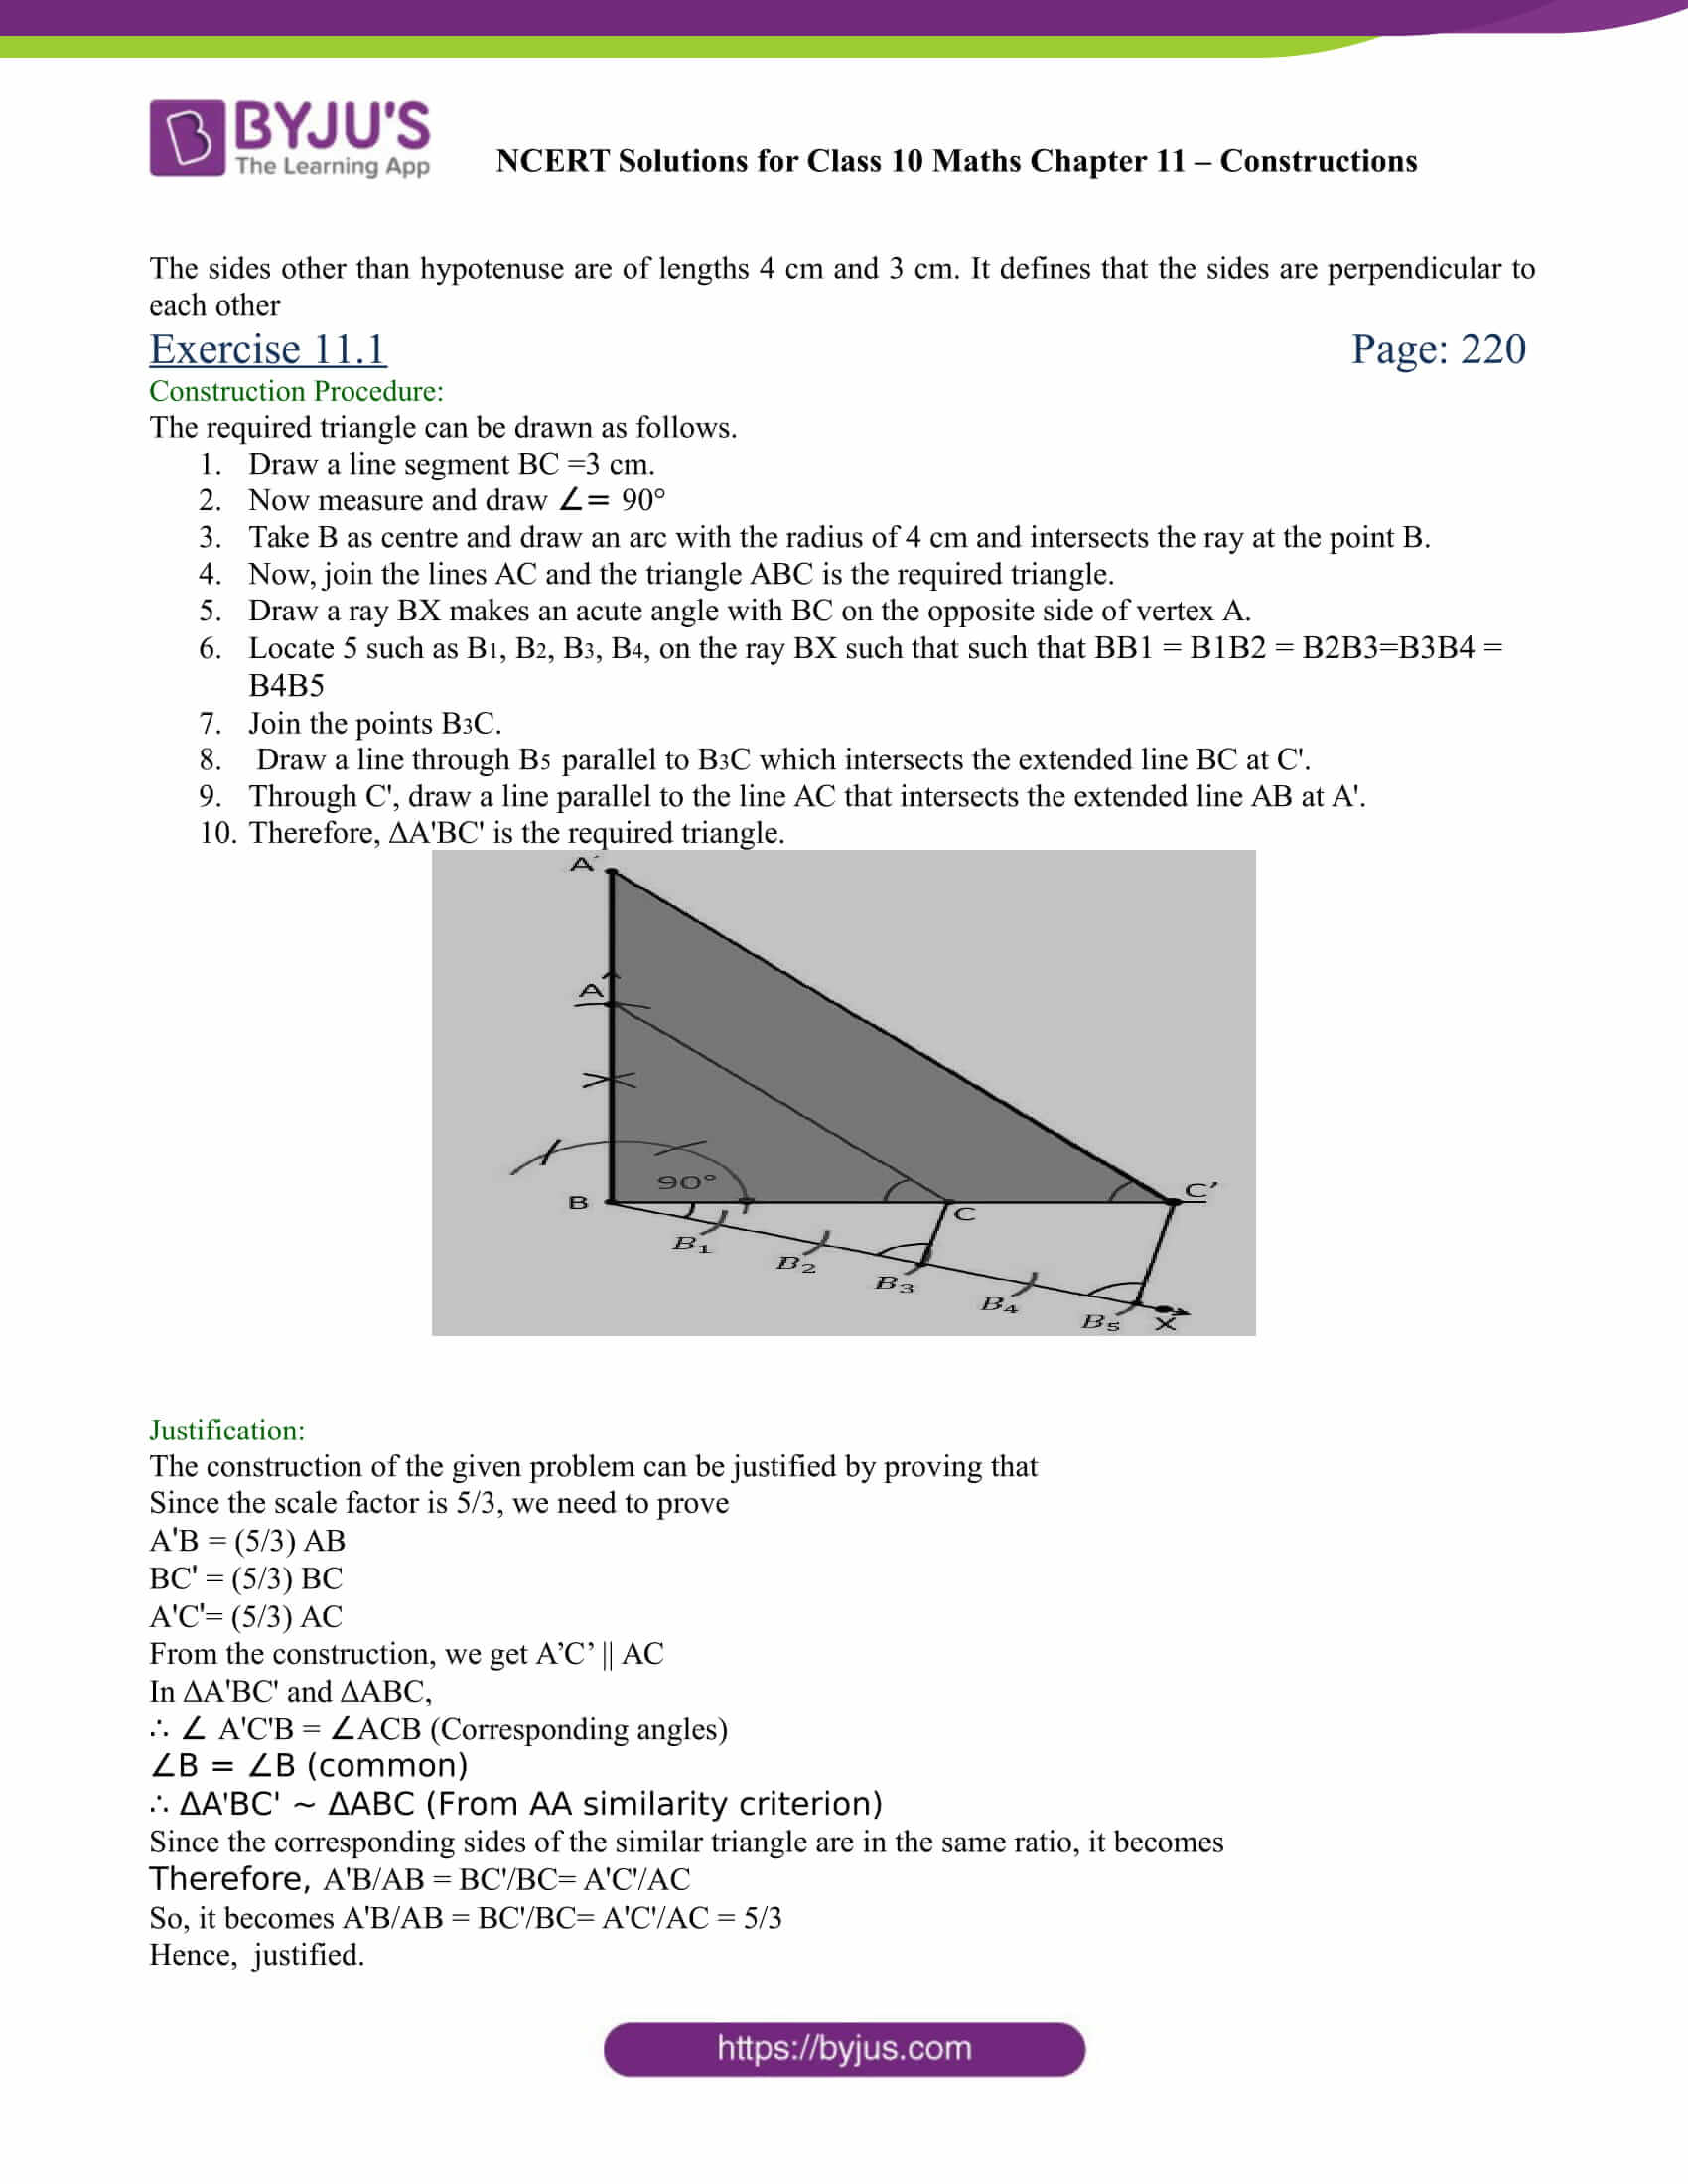 NCERT Solutions for class 10 chapter 11 Constructions Part 8